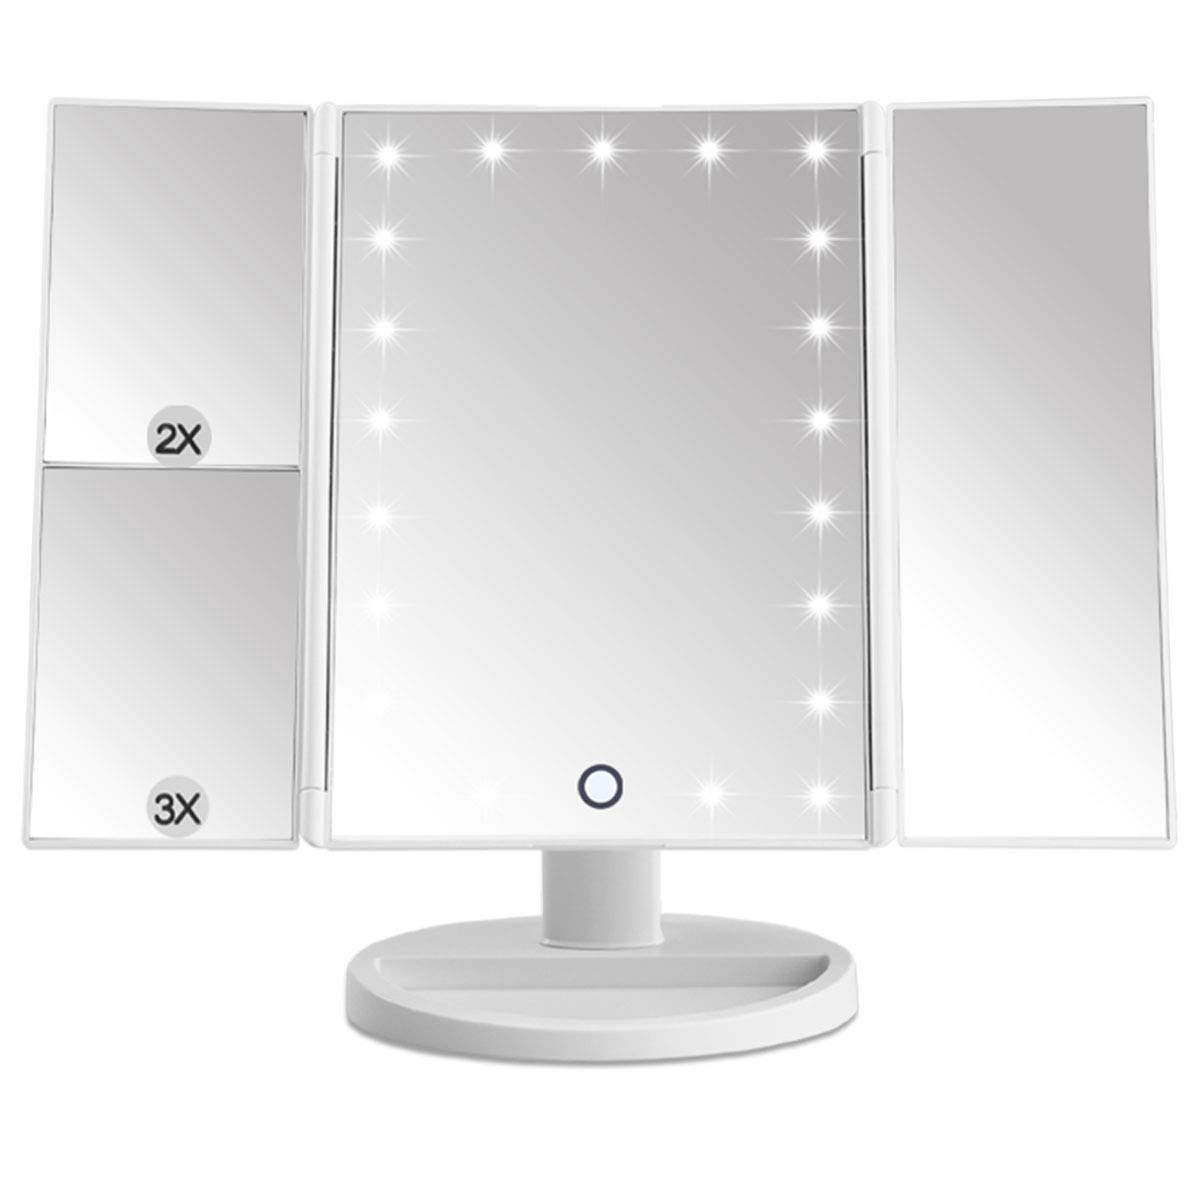 Makeup Mirror EMOCCI 21 LED Lighted Vanity Mirrors Tri-Fold Adjustable With 3X 2X Magnification 180 Degree Rotation USB Charging For Cosmetic Travel Tabletop Countertop Bathroom (White)